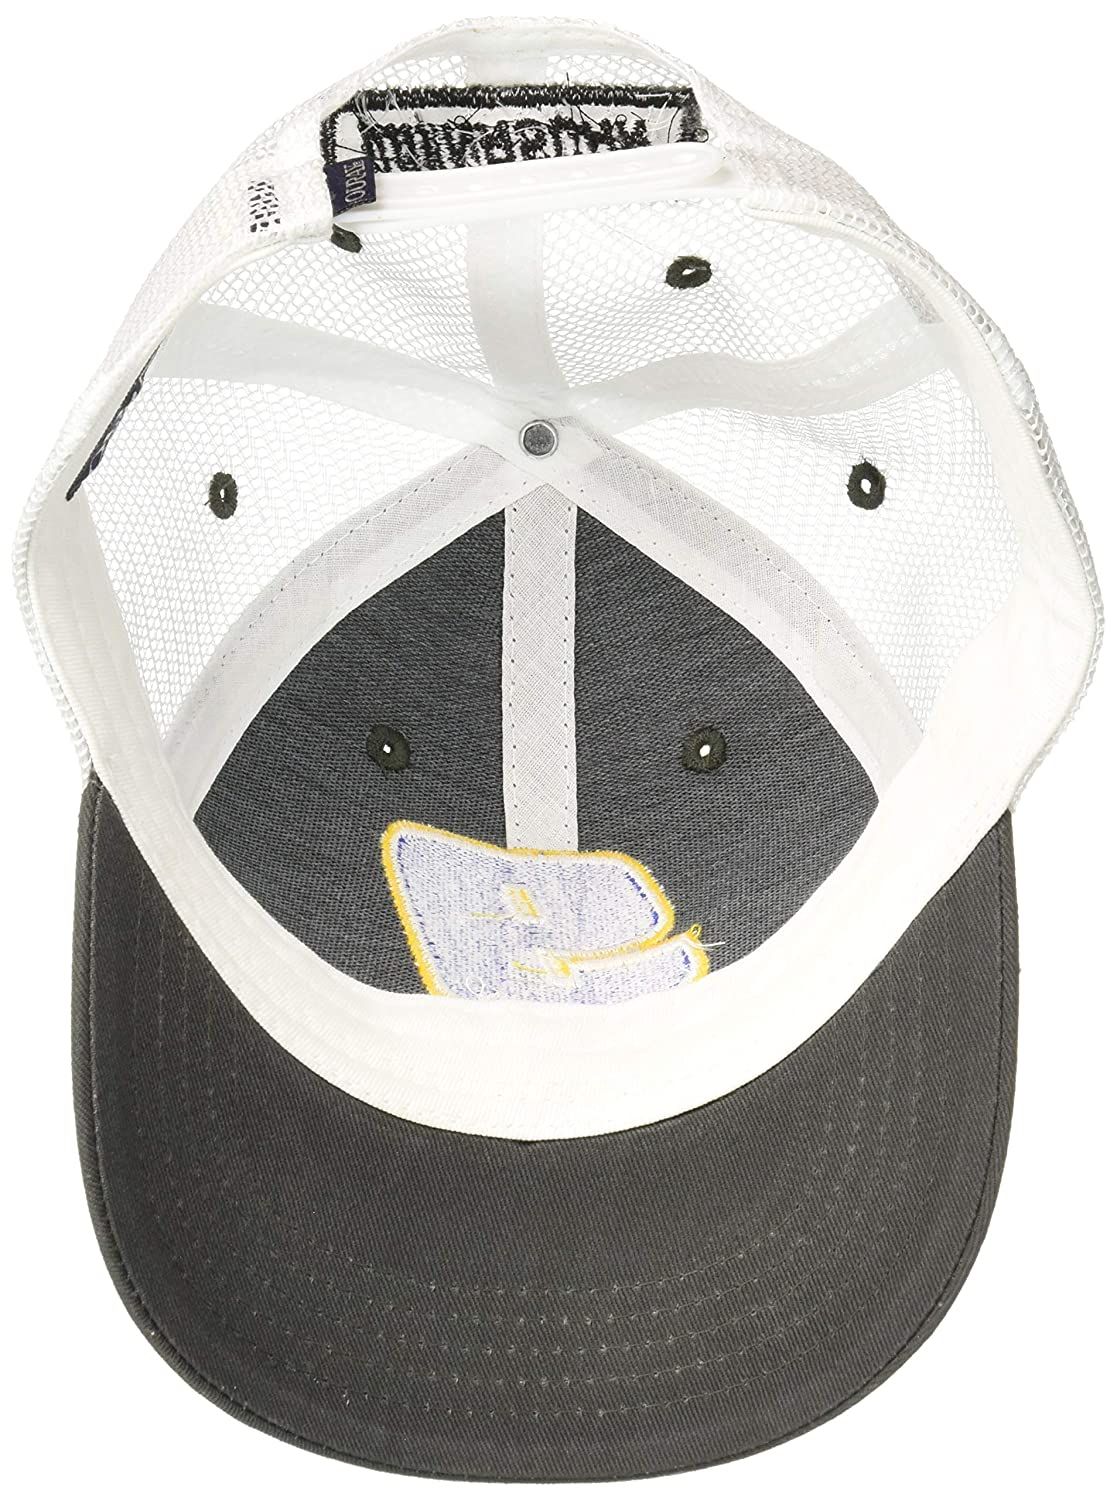 Ouray Sportswear NASCAR Teen-Boys Youth Sideline Mesh Cap